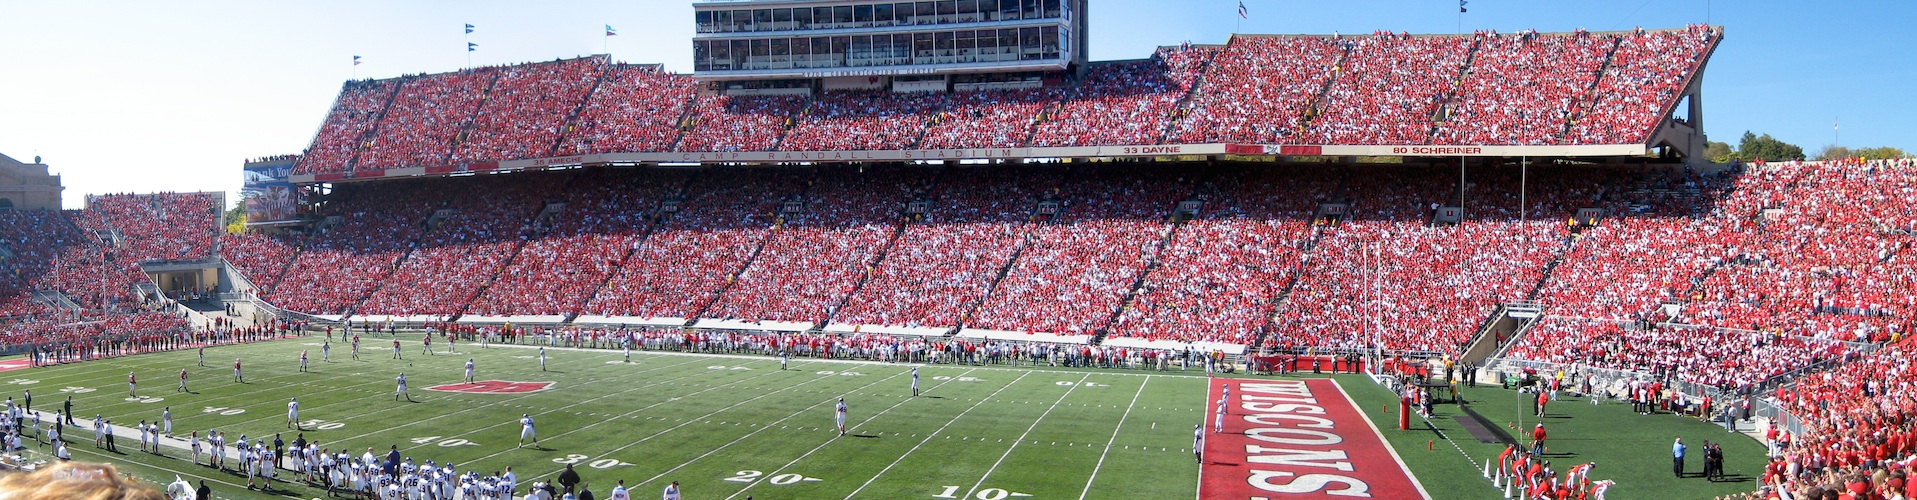 Camp Randall on football Saturday in Madison, Wisconsin.